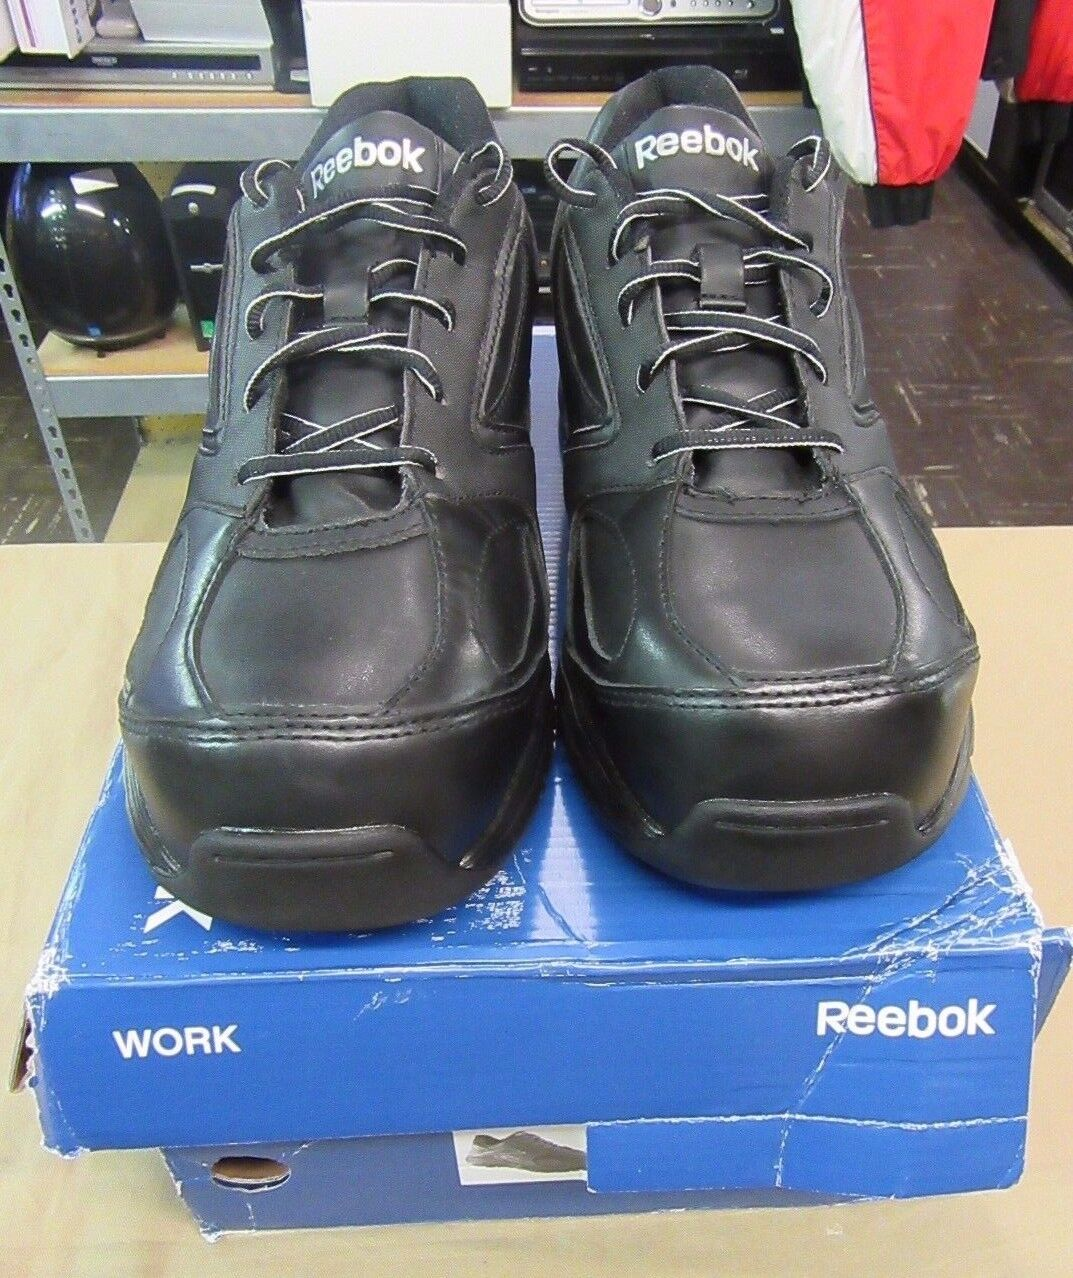 New Reebok RB4490 hommes Taille 10.5 Chaussures Senexis Classic Oxford noir Comp Toe